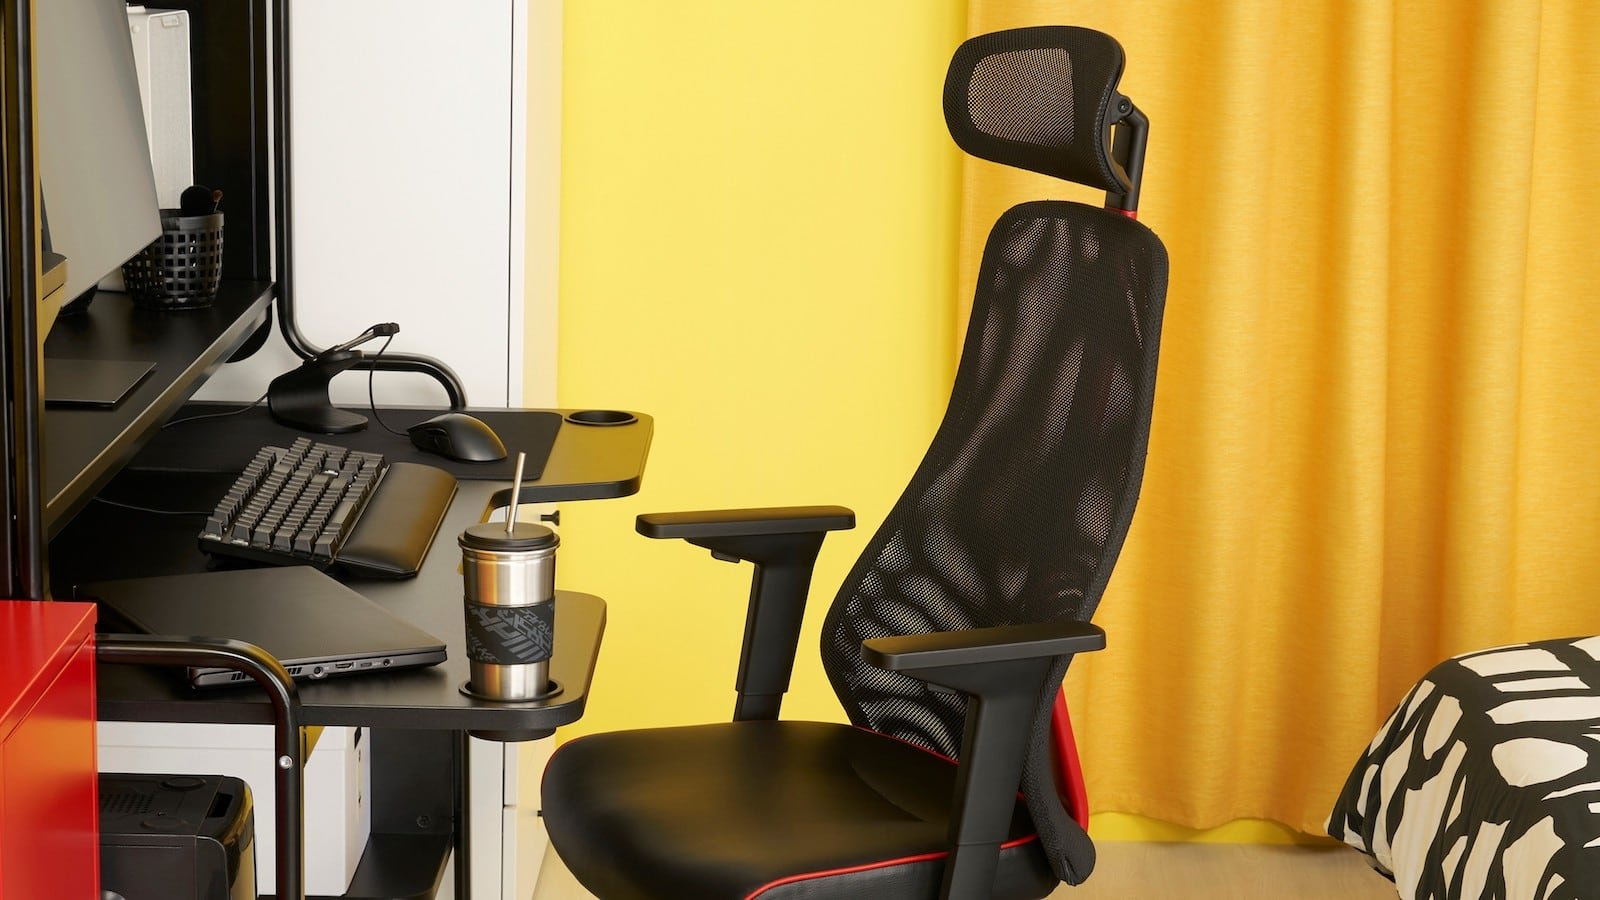 IKEA MATCHSPEL gaming chair provides adjustable support